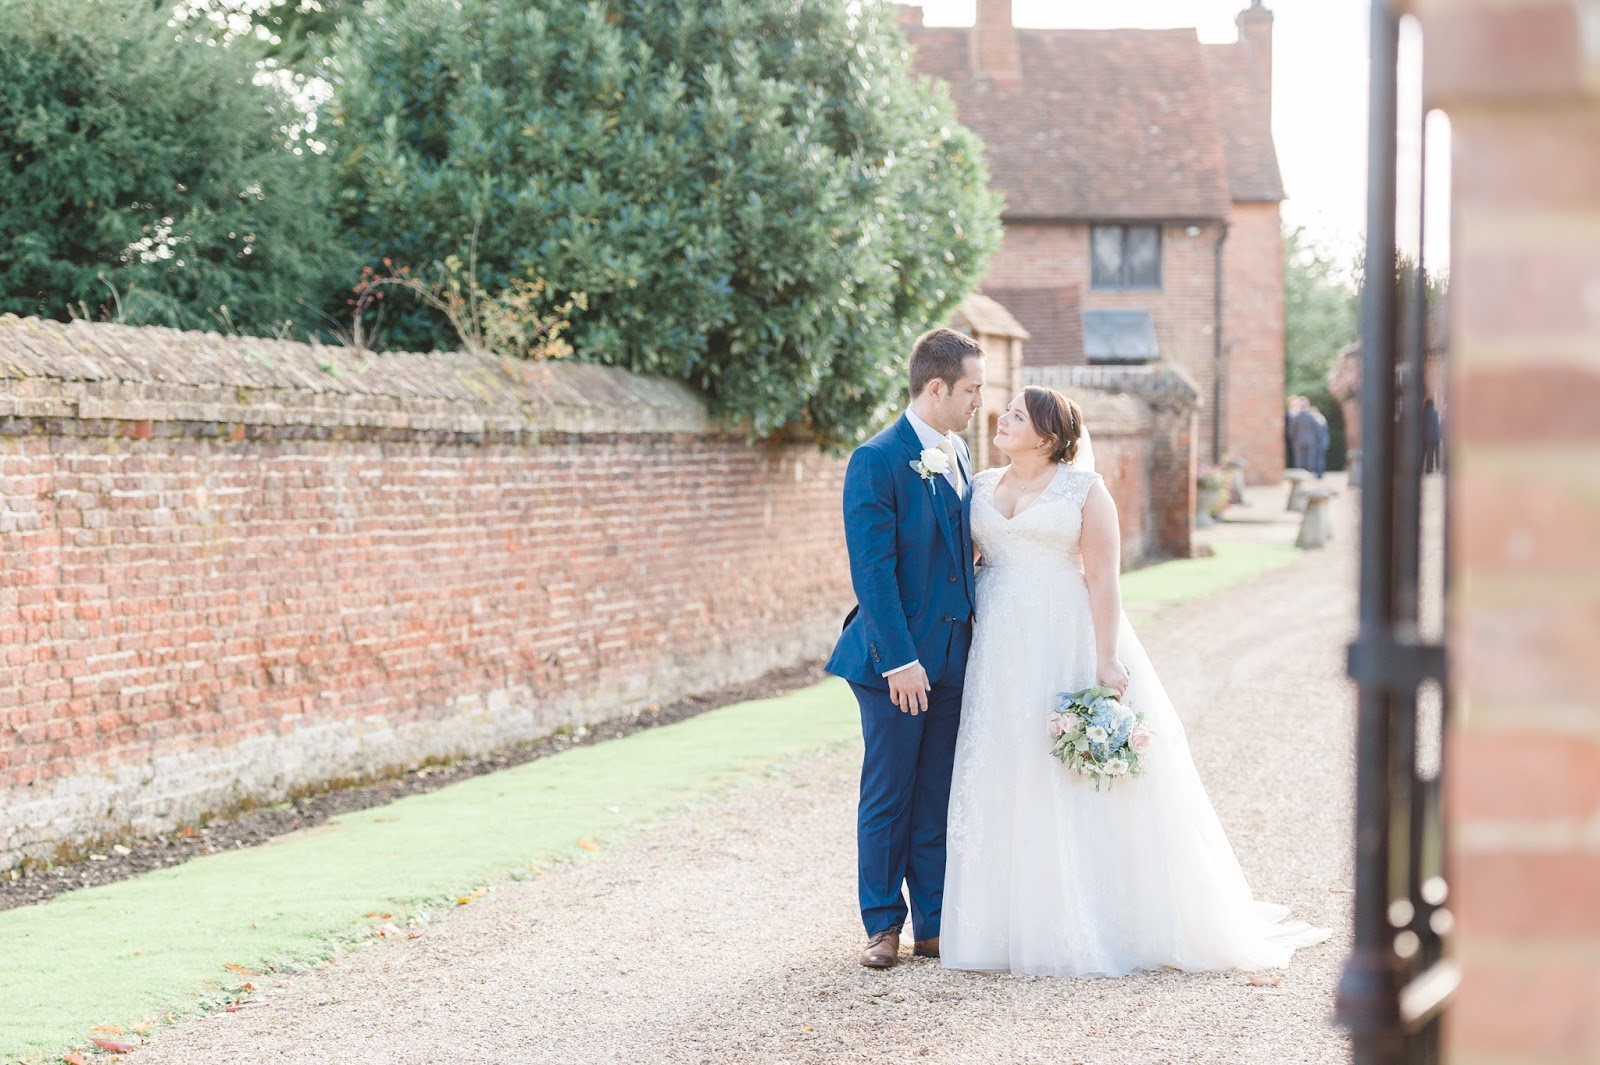 What To Look For When Booking A Wedding Photographer